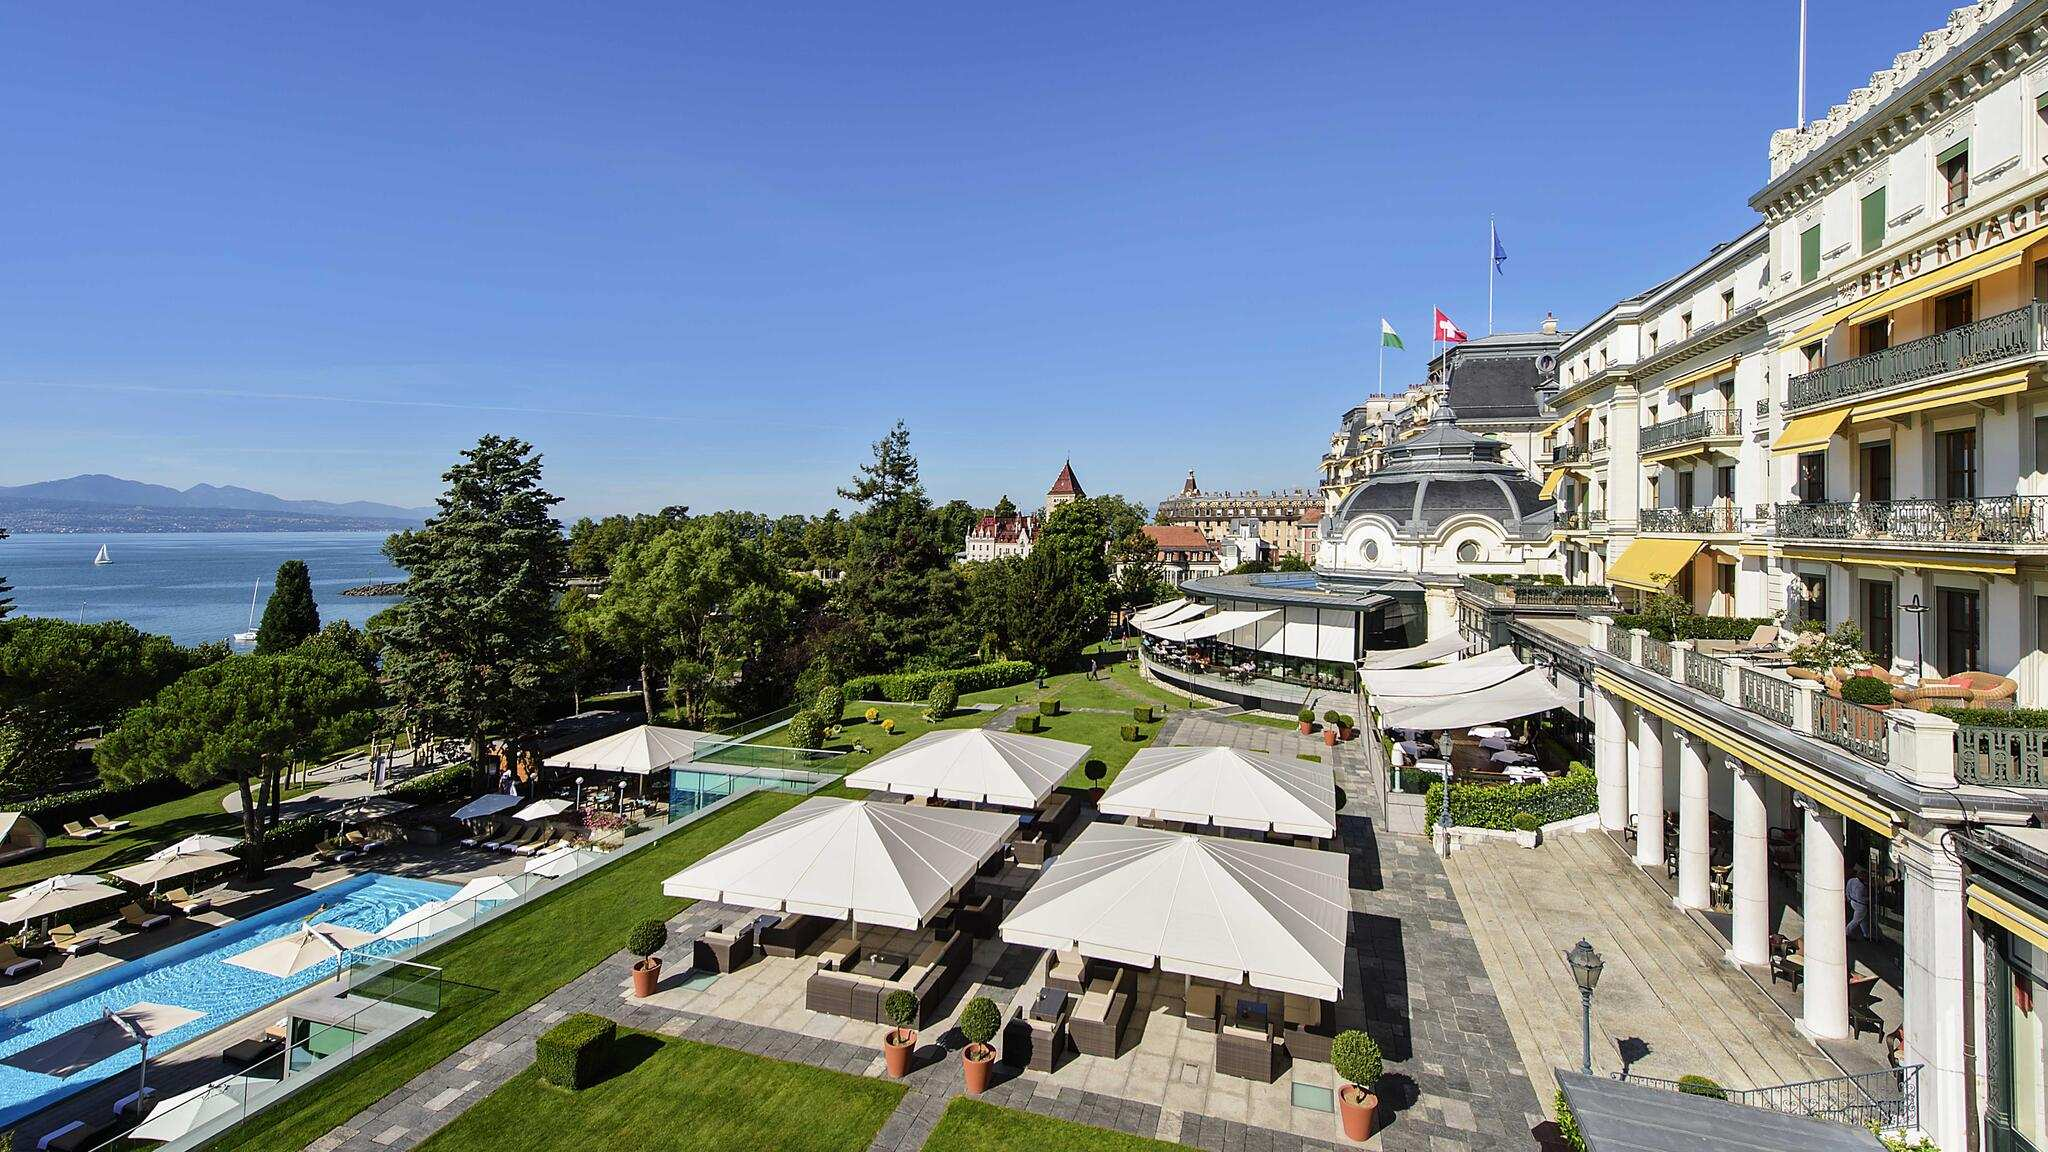 Aussenansicht vom Hotel Beau-Rivage Palace Restaurant Cafe Beau Rivage in Lausanne - GaultMillau